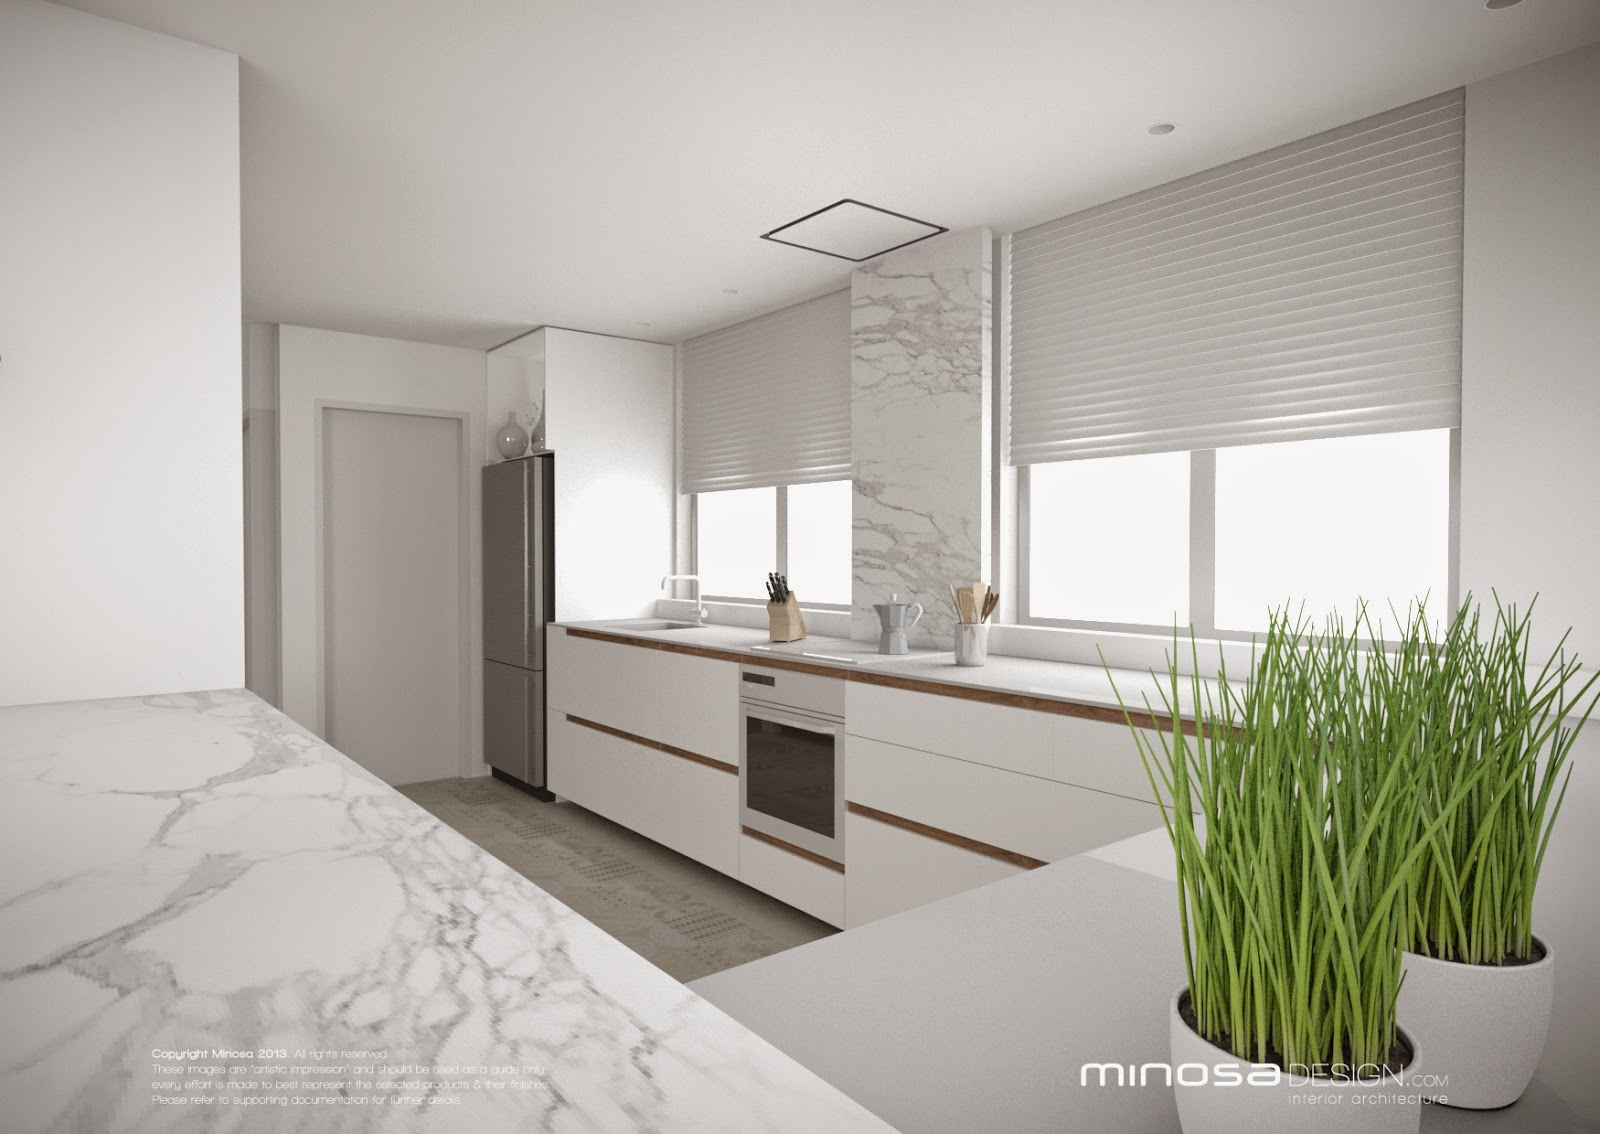 White Kitchen Design 2014 minosa: white kitchen design - fresh or boring?